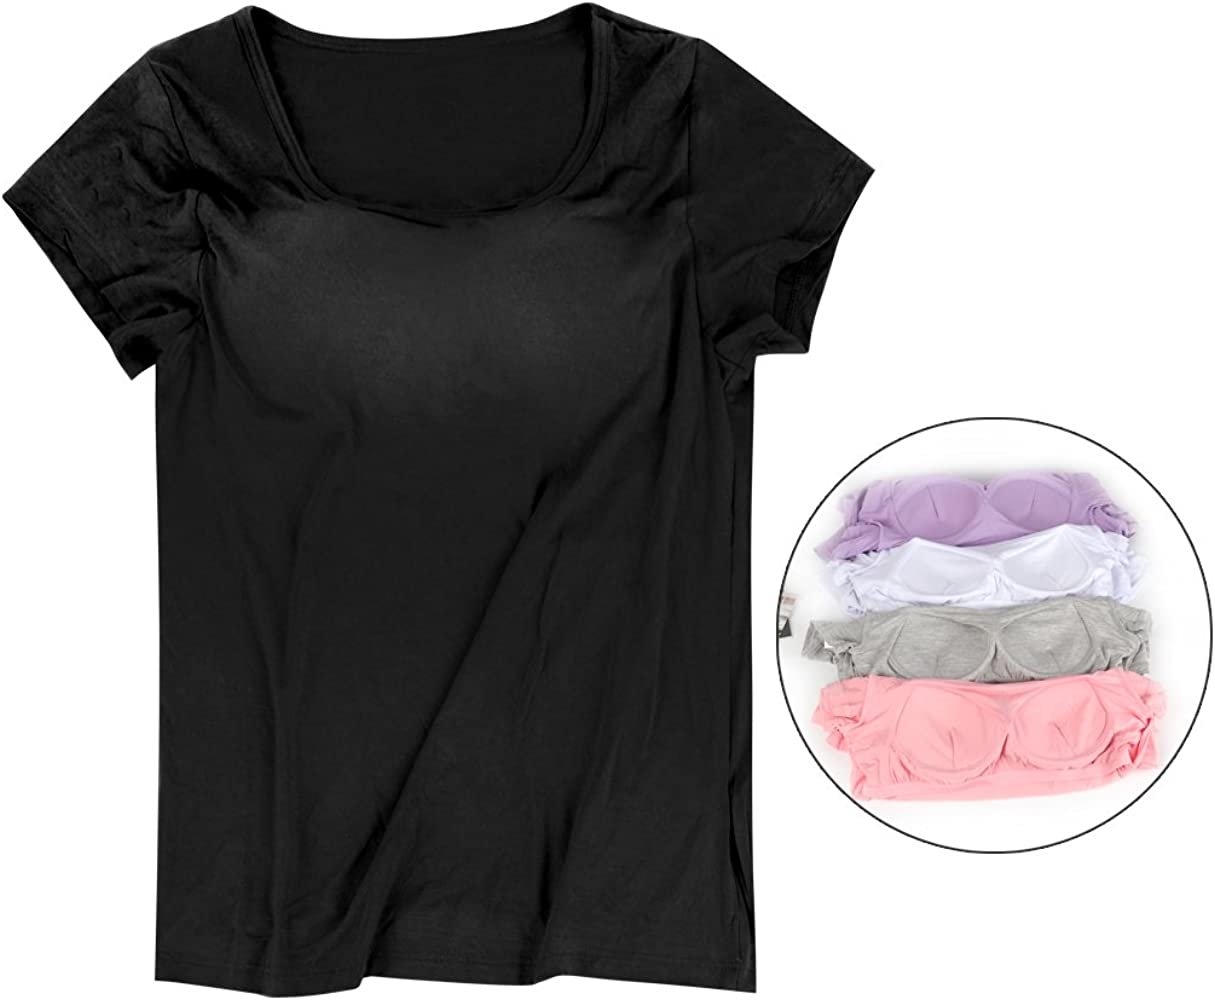 GHCHEN Womens Round Neck Modal Built-in Bra Tanks Tops Camisole Yoga Casual Tops T-Shirt Black XL